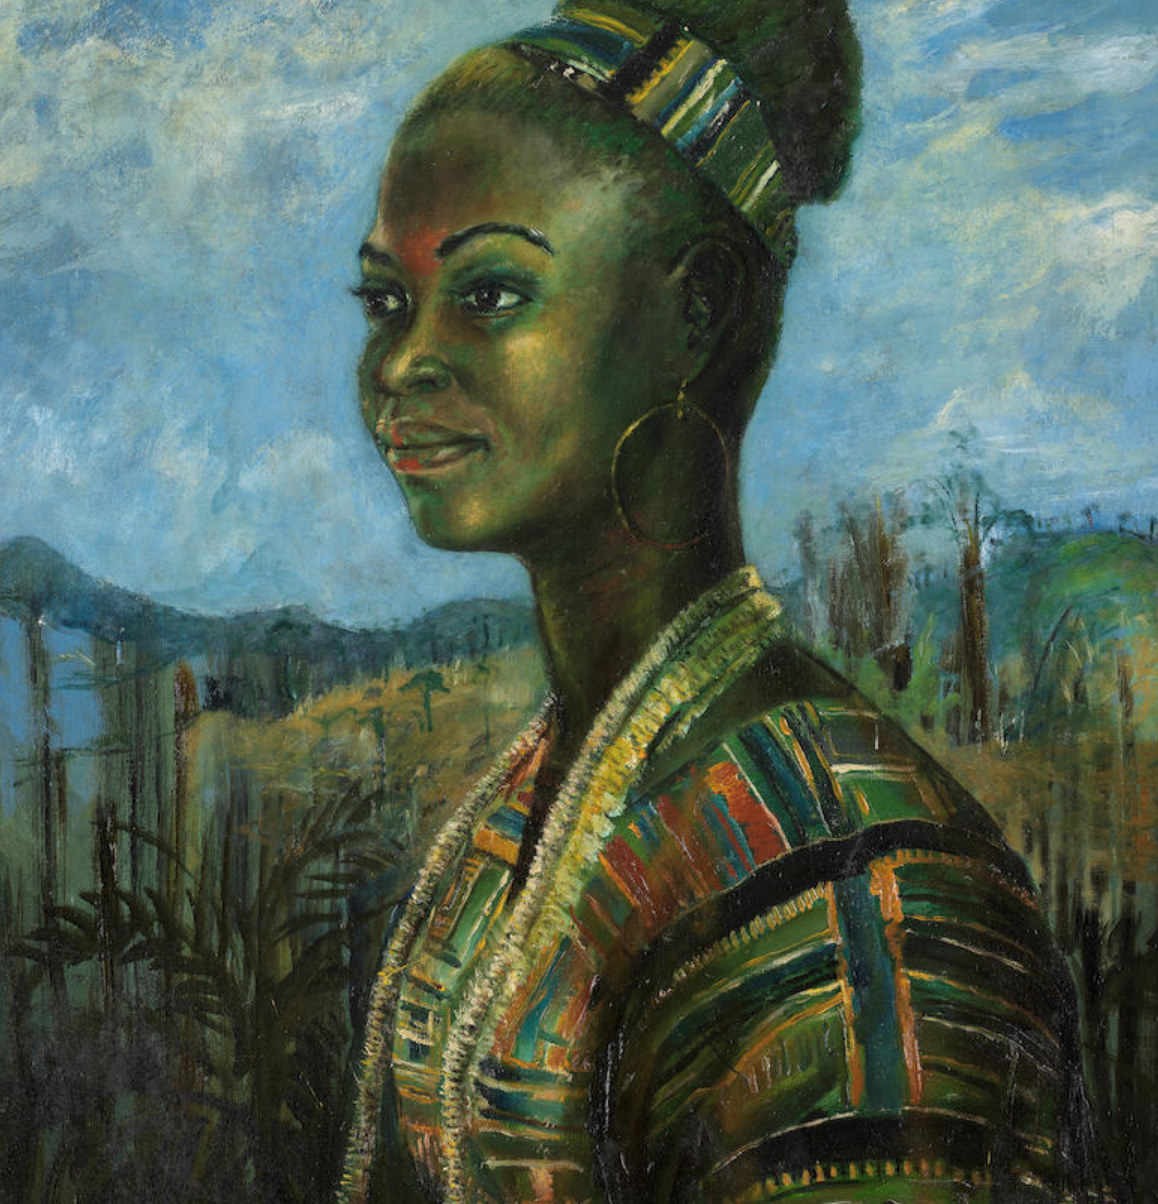 Ben Enwonwu, Portrait of Marianne, 1972. Modern & Contemporary African Art Auction at Bonhams